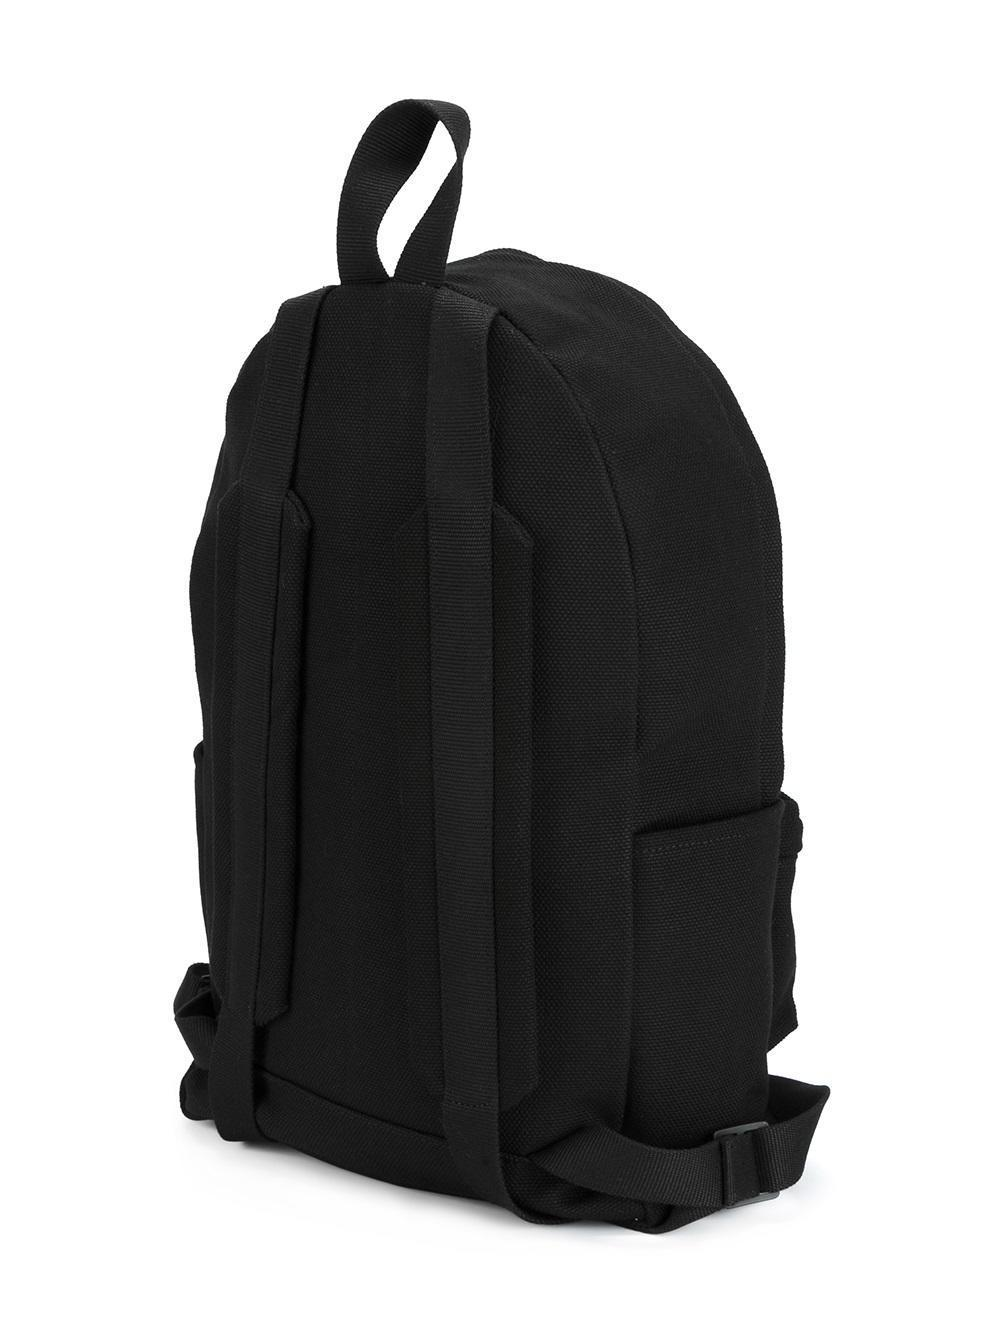 当日 SS17 OFF WHITEオフホワイトDIAG SPRAY BACKPACK